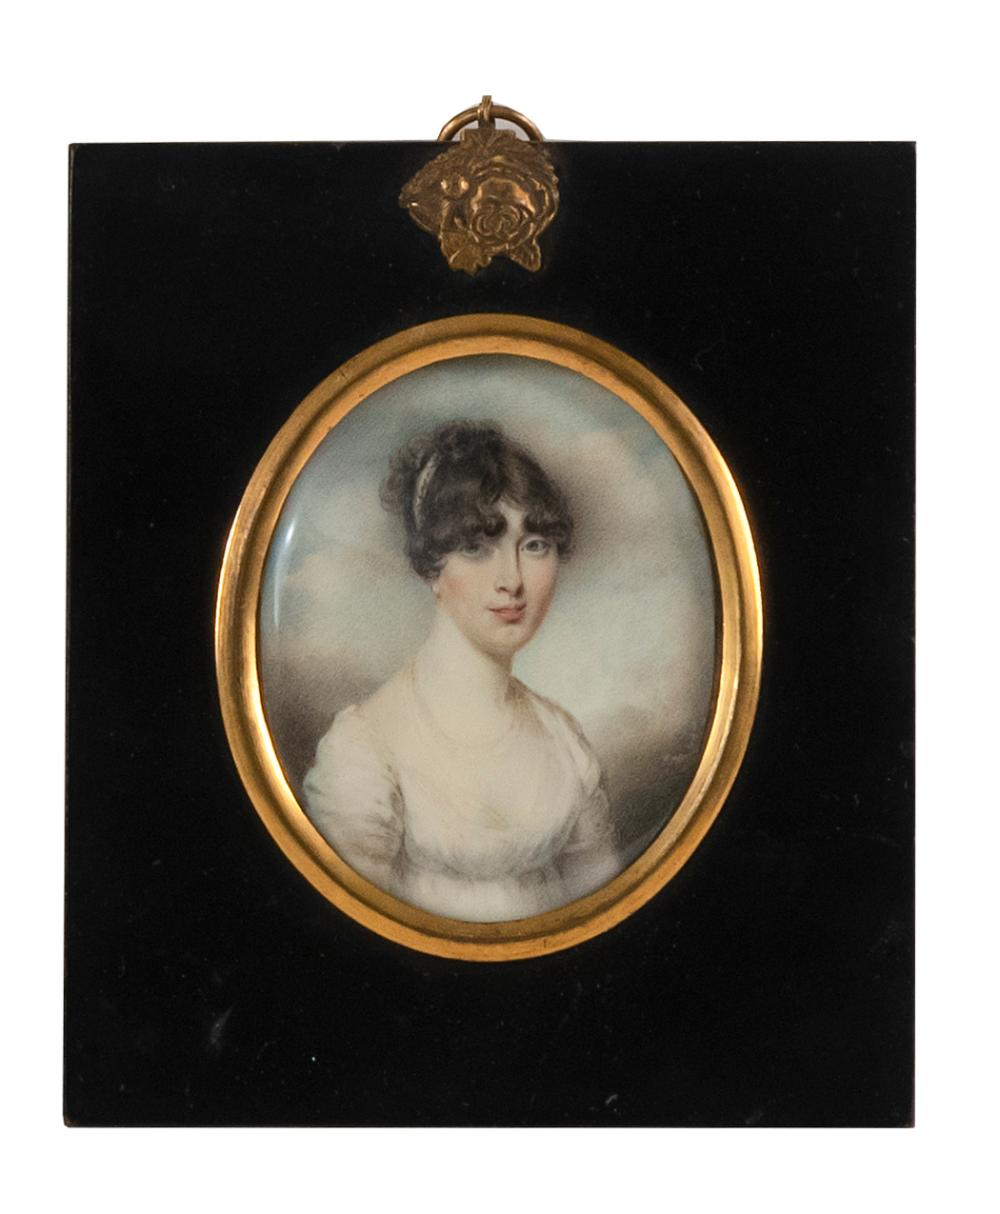 """MINIATURE PORTRAIT OF A YOUNG WOMAN Unsigned. 2.75"""" x 2.5"""" sight. Framed 5"""" x 4""""."""